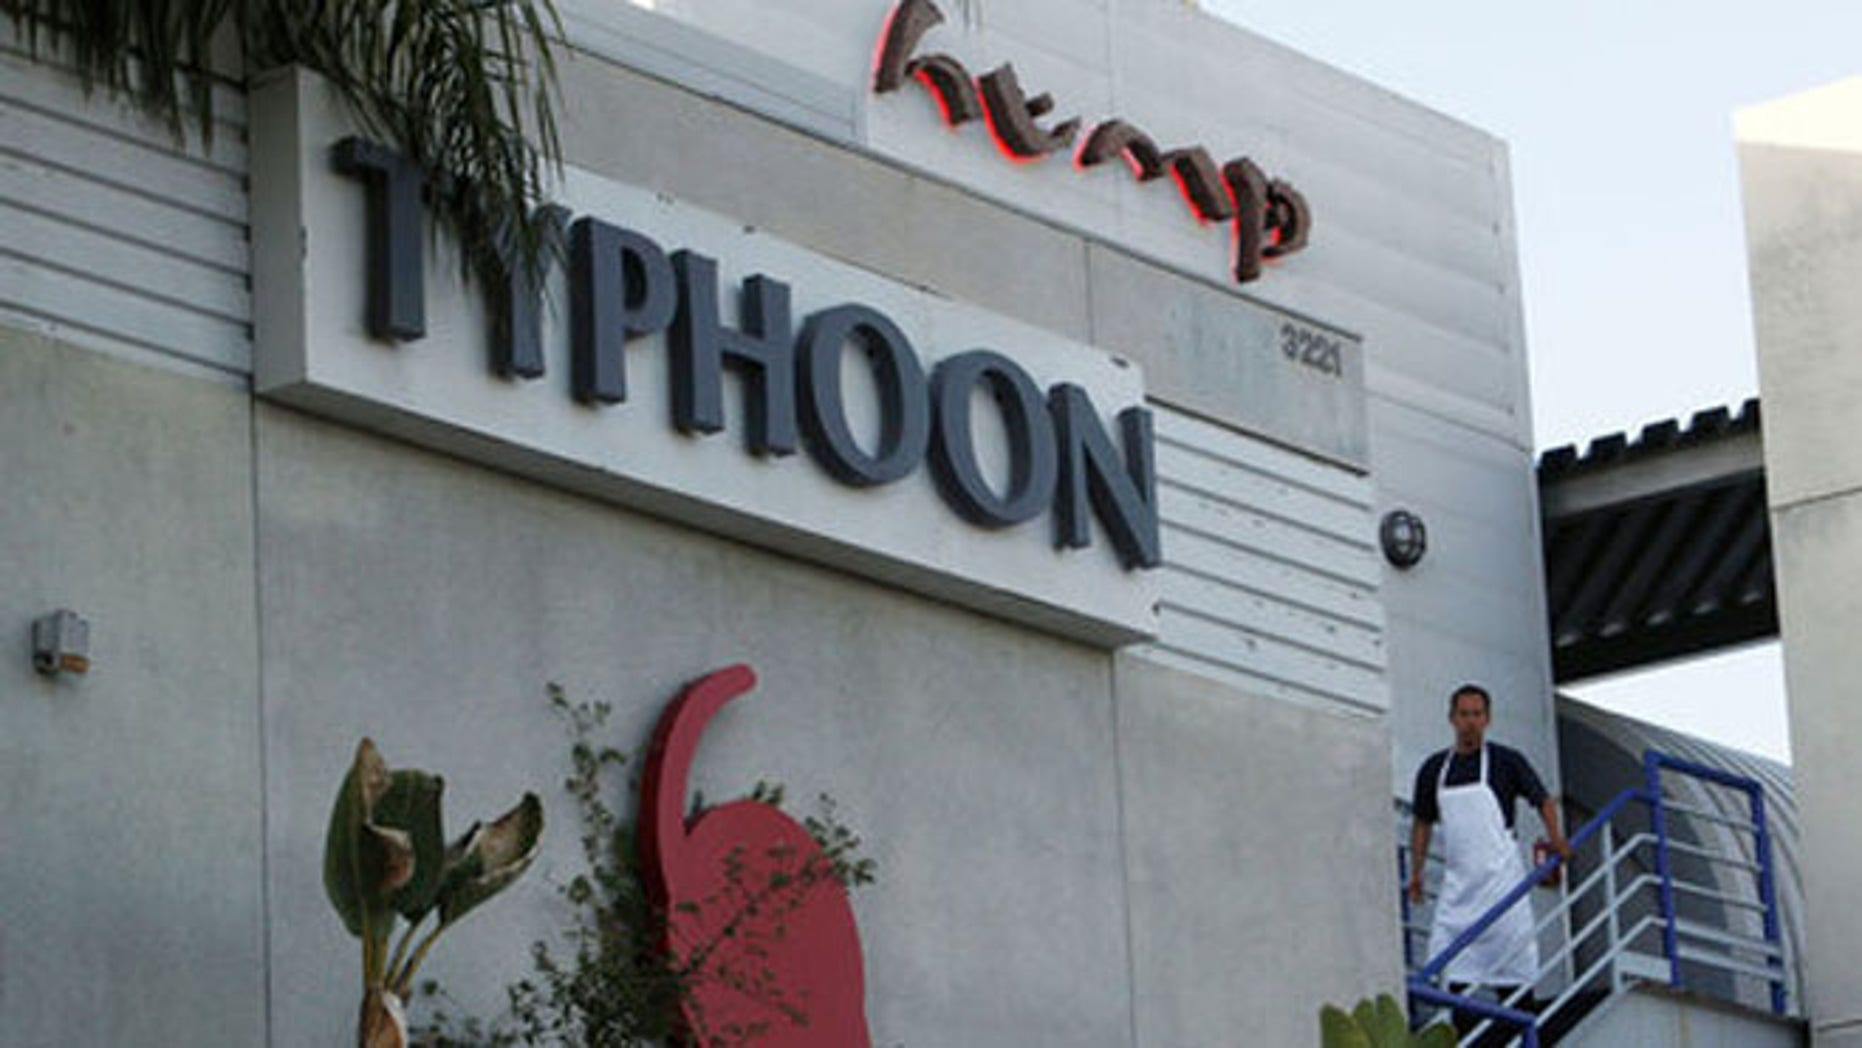 Typhoon Restaurant Inc., parent of The Hump restaurant, were charged with selling Sei whale meat.